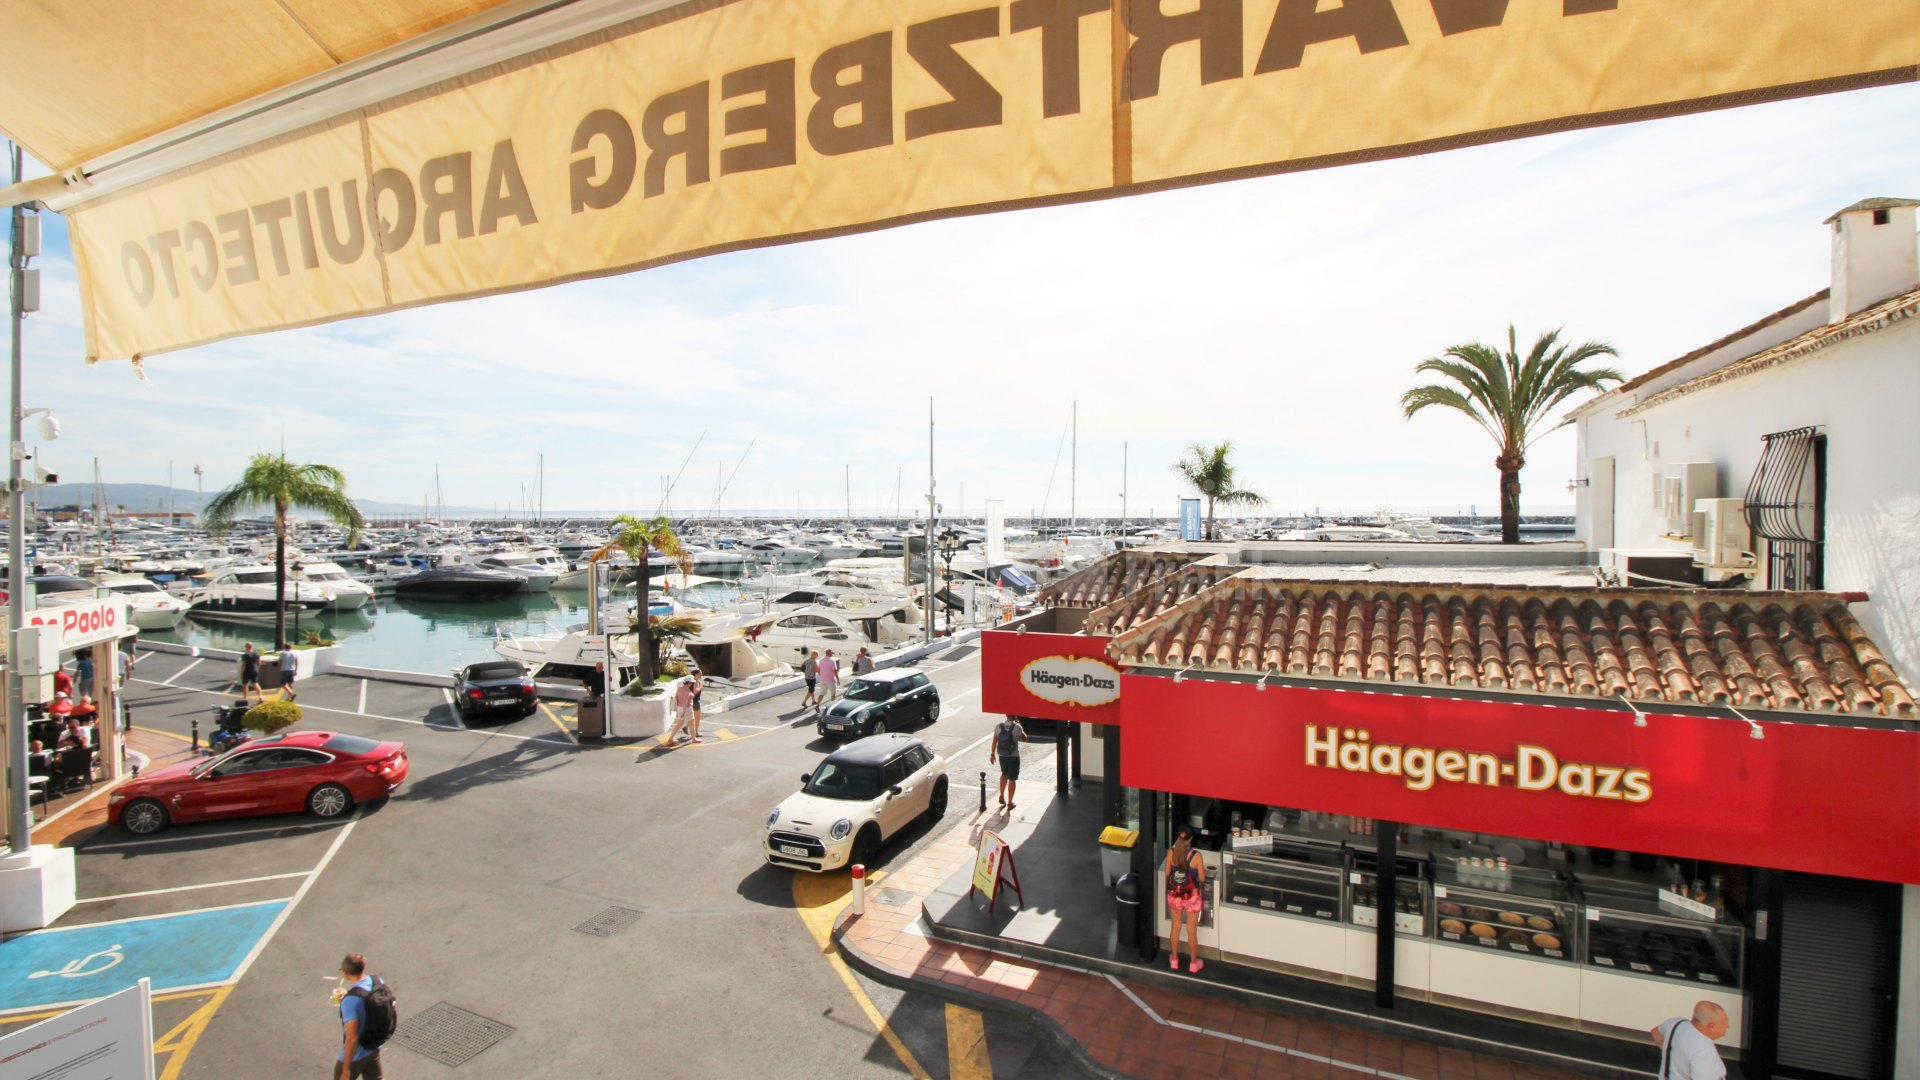 Commercial Premises for sale in Puerto, Marbella - Puerto Banus